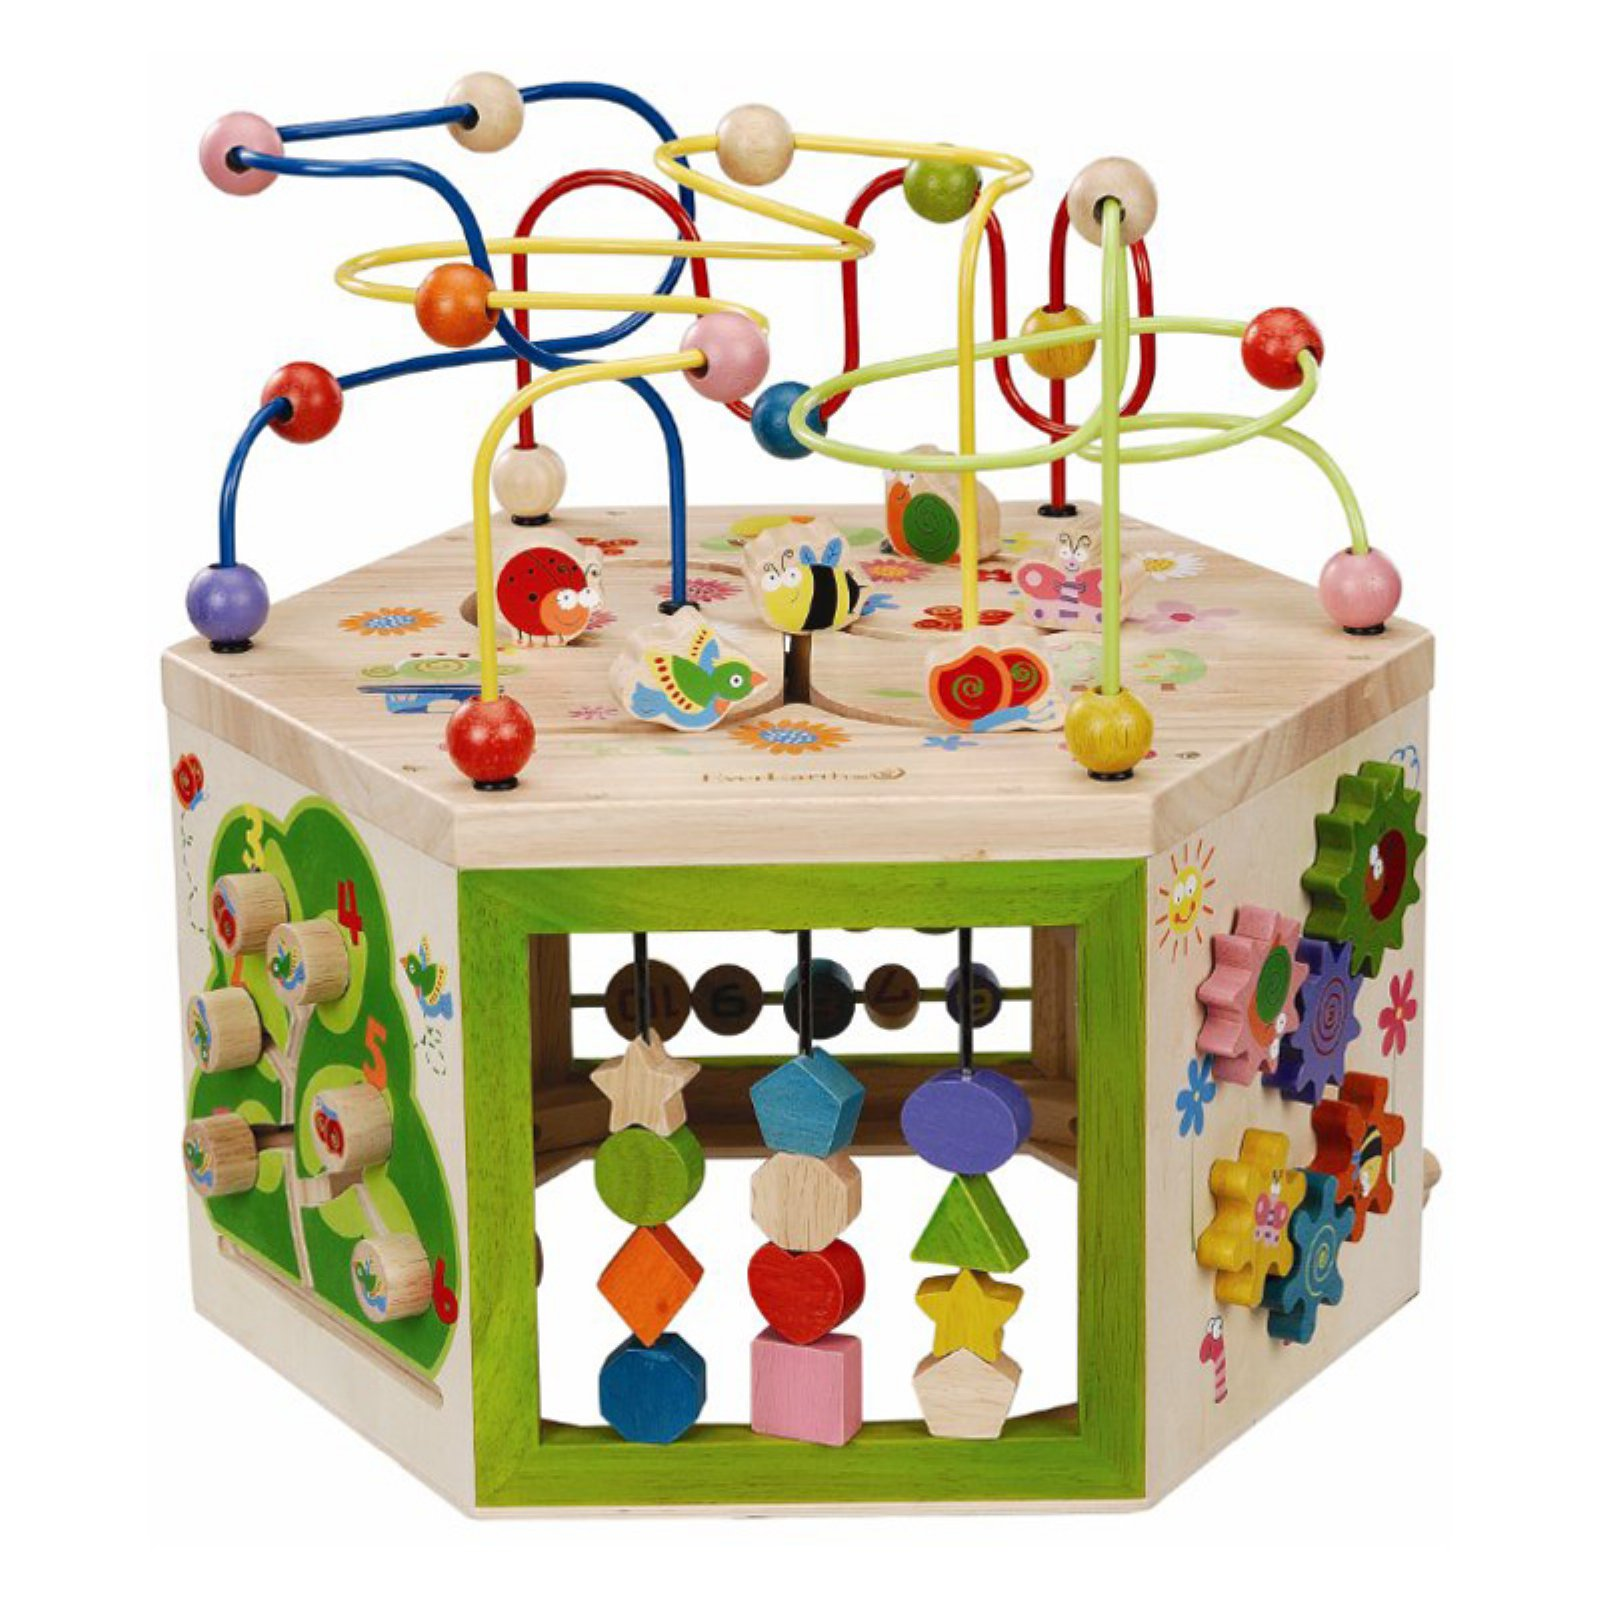 EverEarth Garden Activity Cube by Maxim